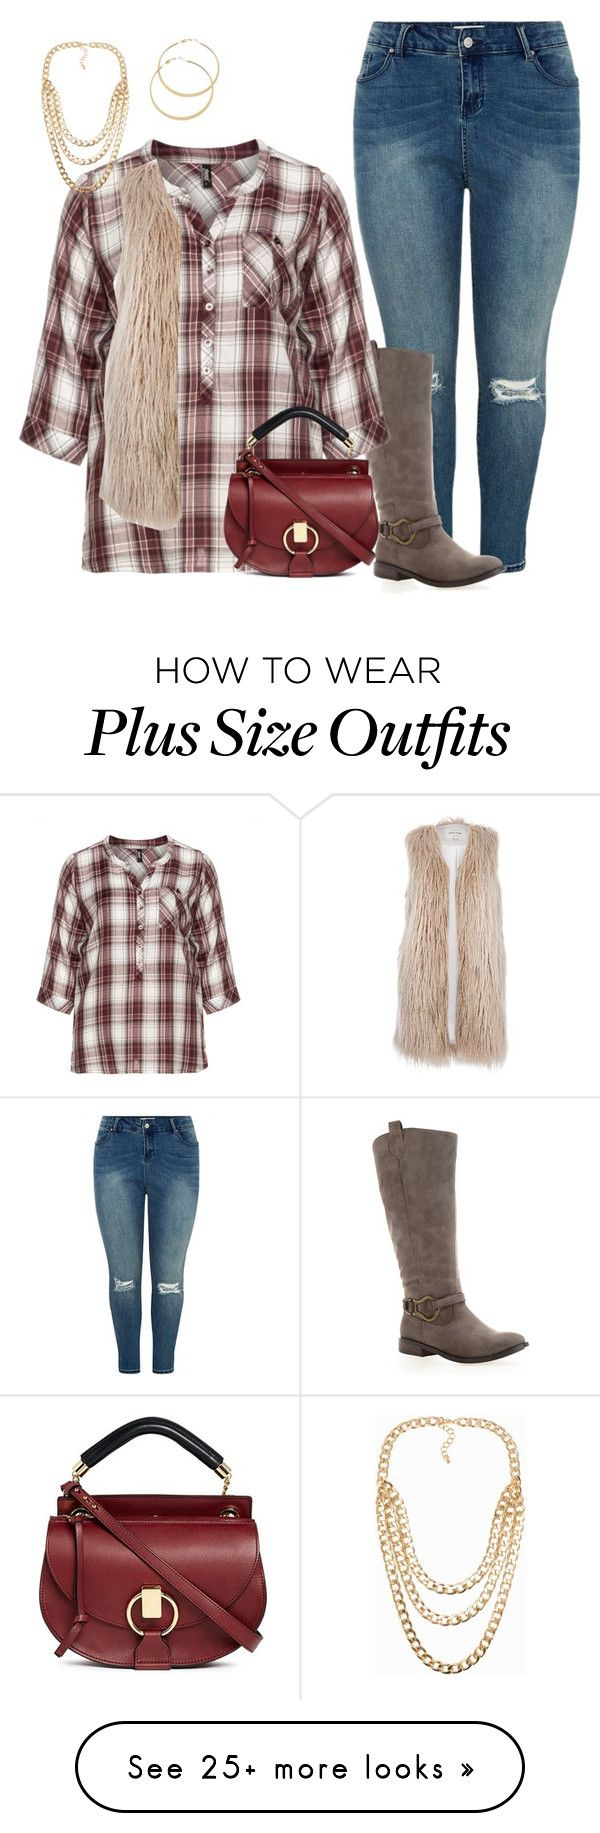 """plus size hoilday shopping"" by kristie-payne on Polyvore featuring Avenue, Zhenzi, River Island, Chloé, AX Paris and NLY Accessories"